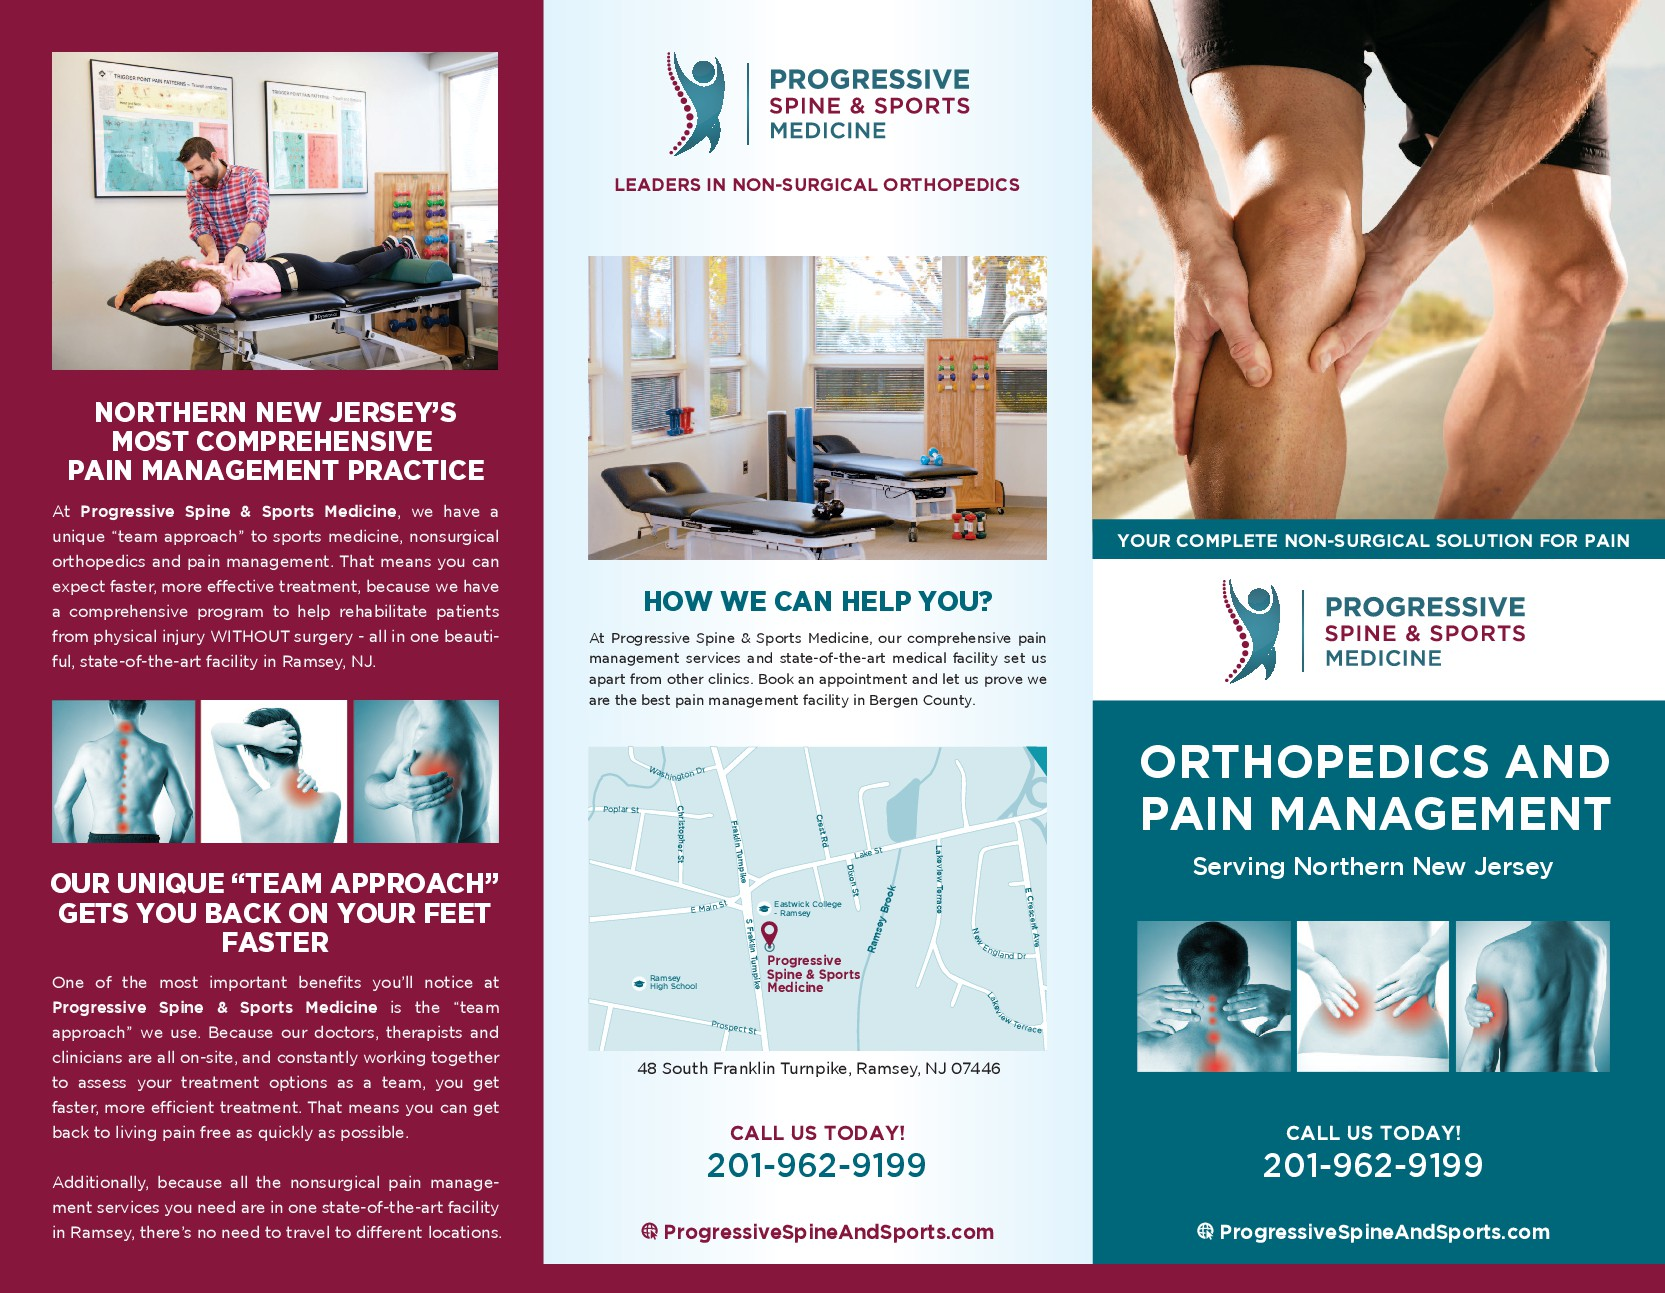 Help design a well-organized, informative (and BEAUTIFUL) brochure for our medical practice!